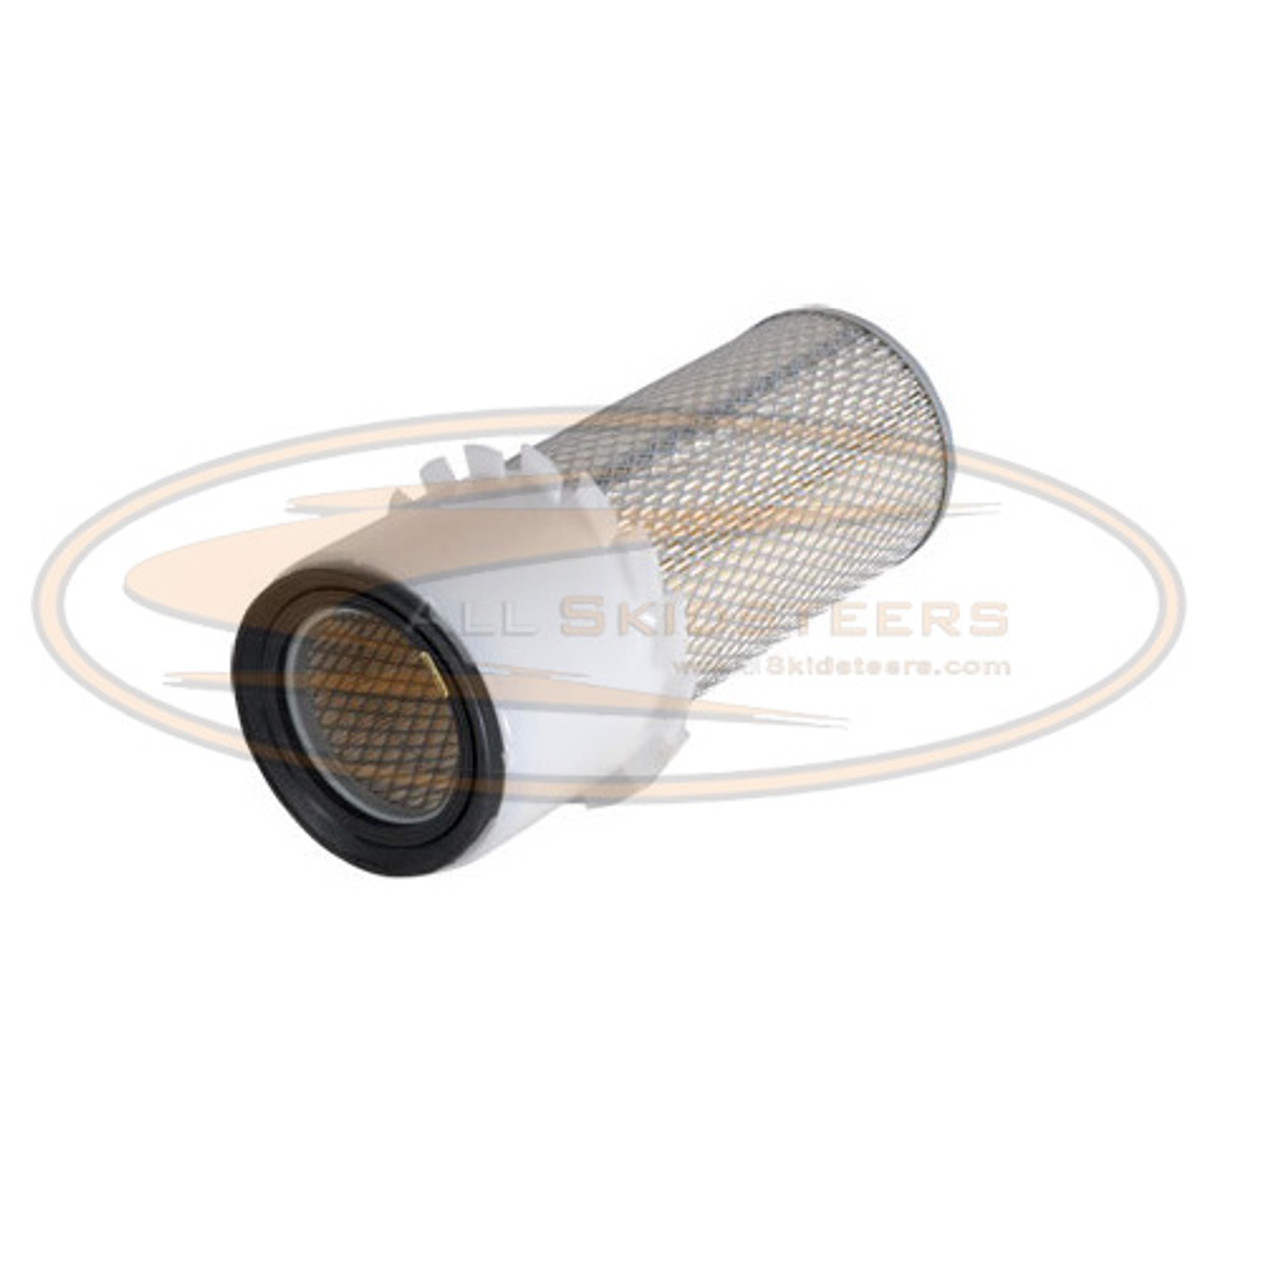 Engine Air Filter for Mustang® Skid Steers 320 ,322,332,345,440,770,1700    Replaces OEM # 42018567